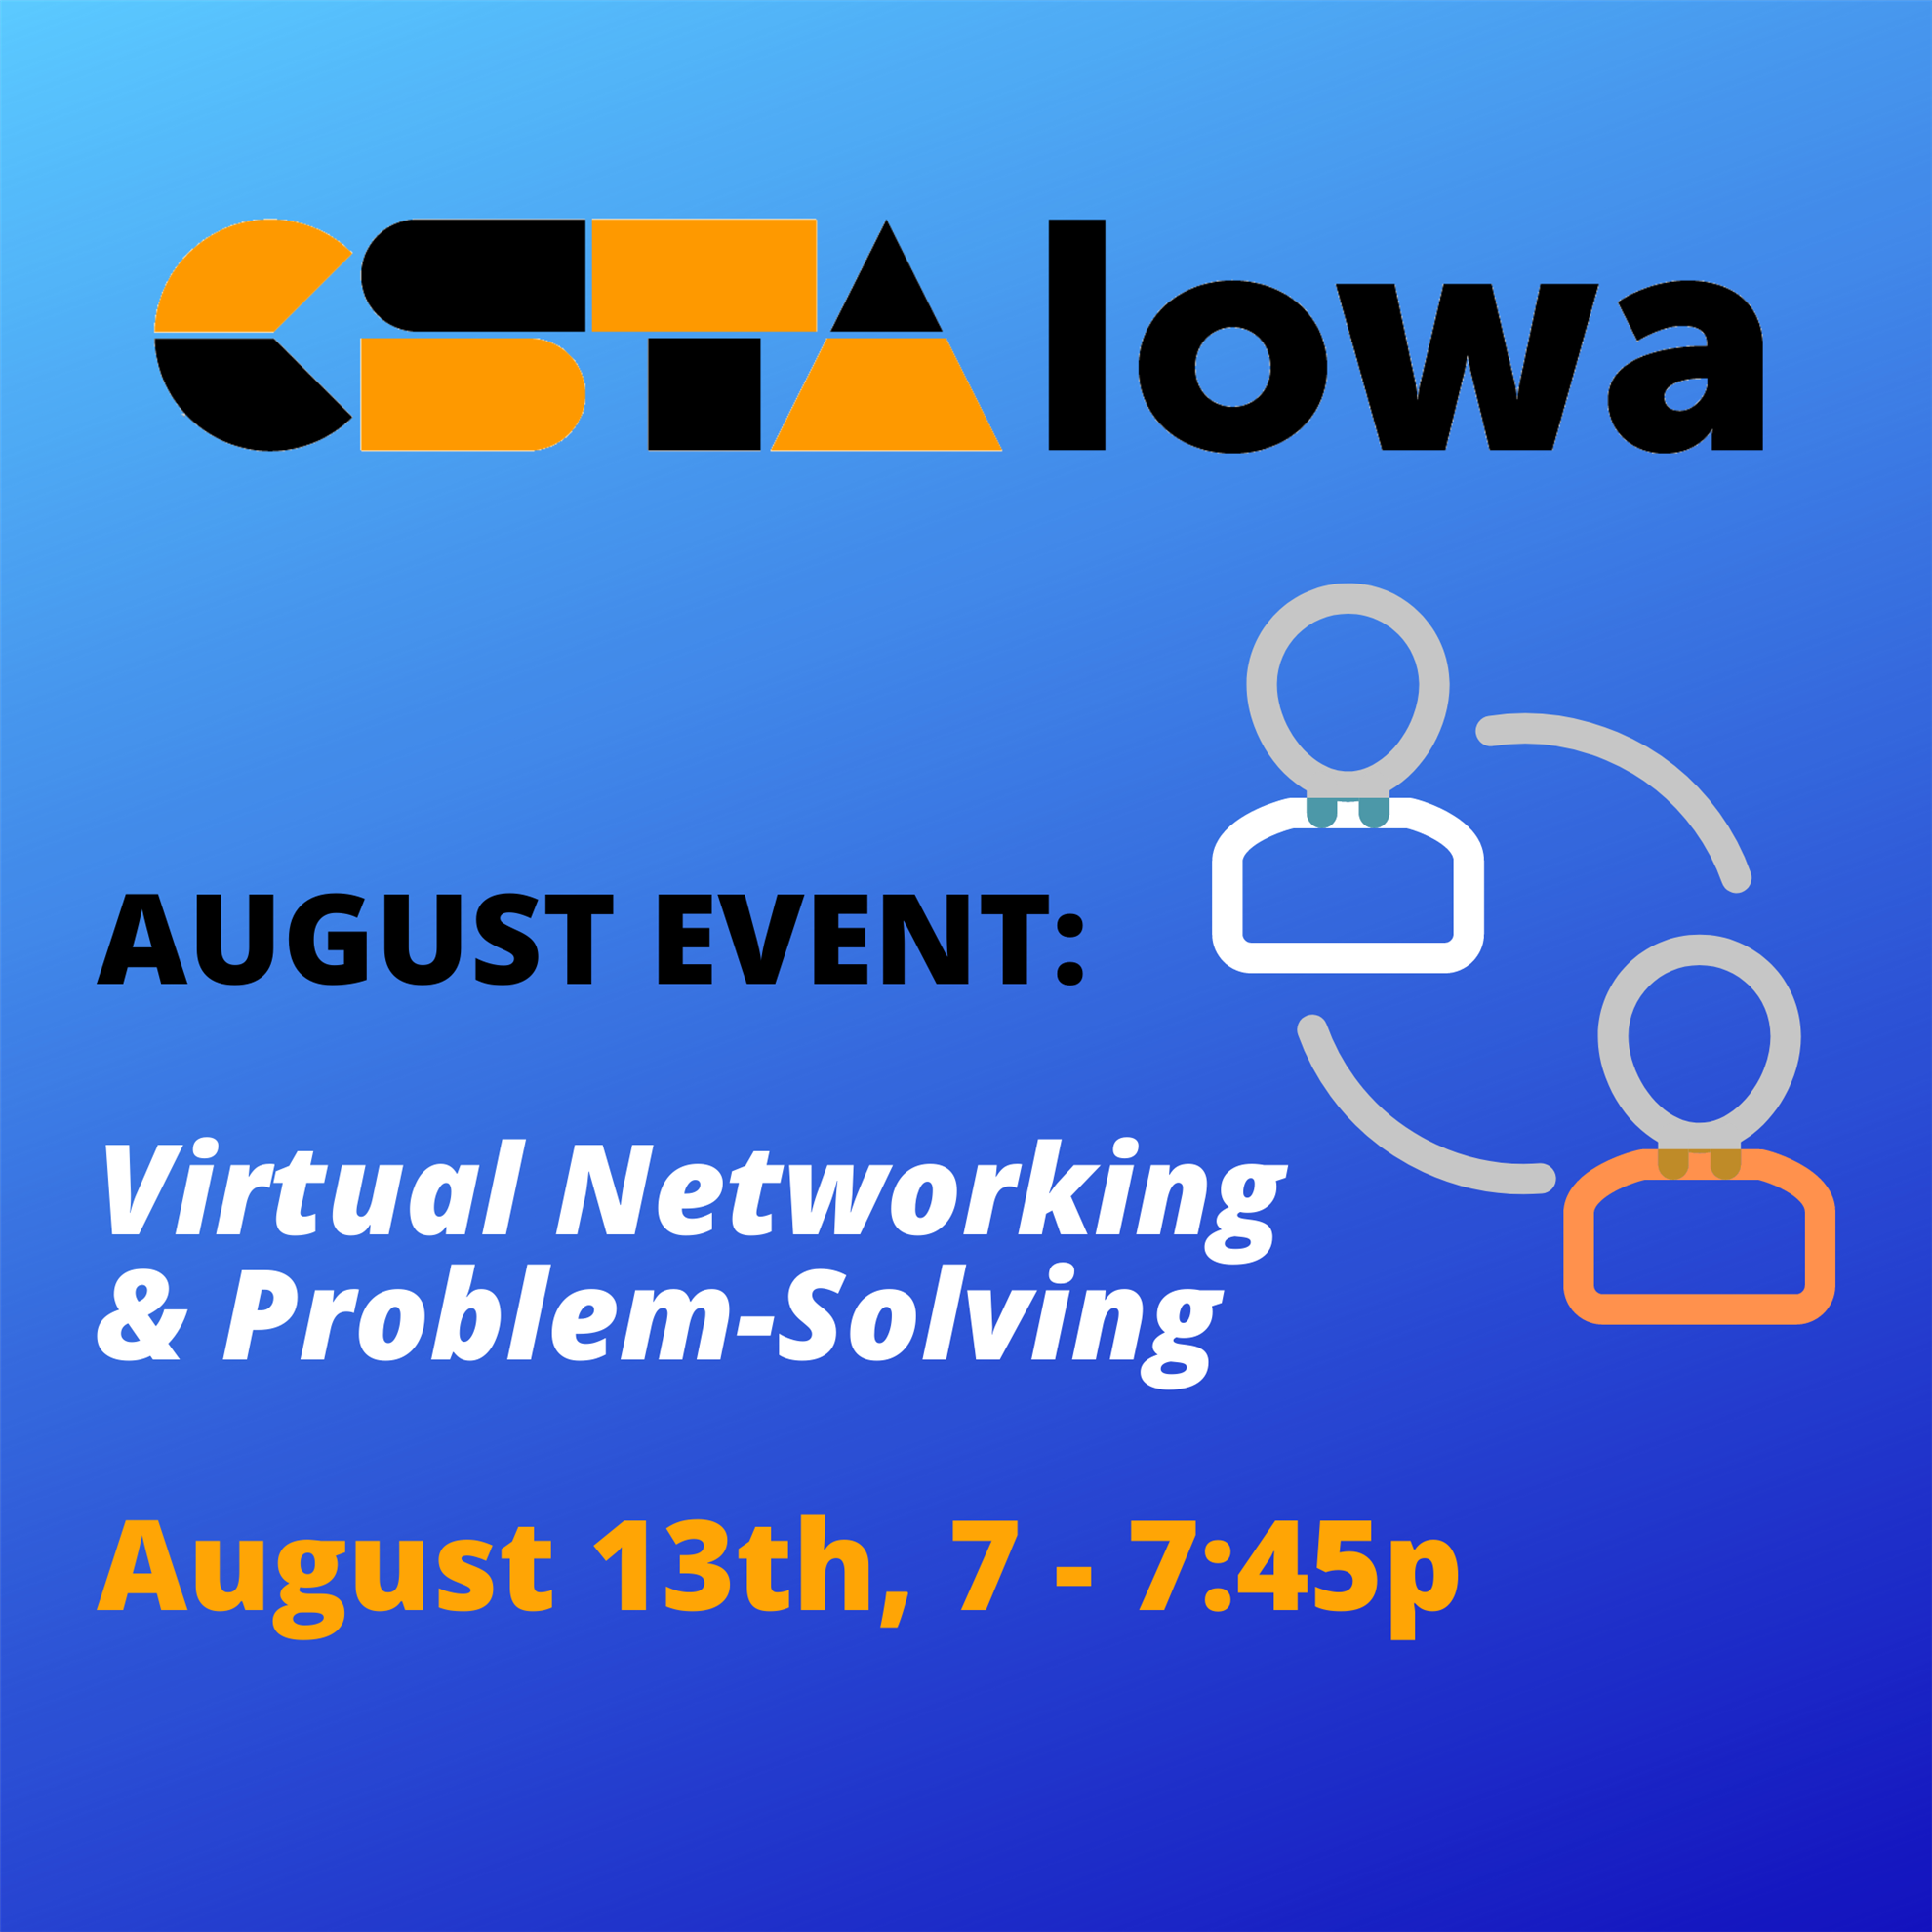 CSTA Iowa August 2020 Virtual Networking and Problem Solving (CSTA Iowa)